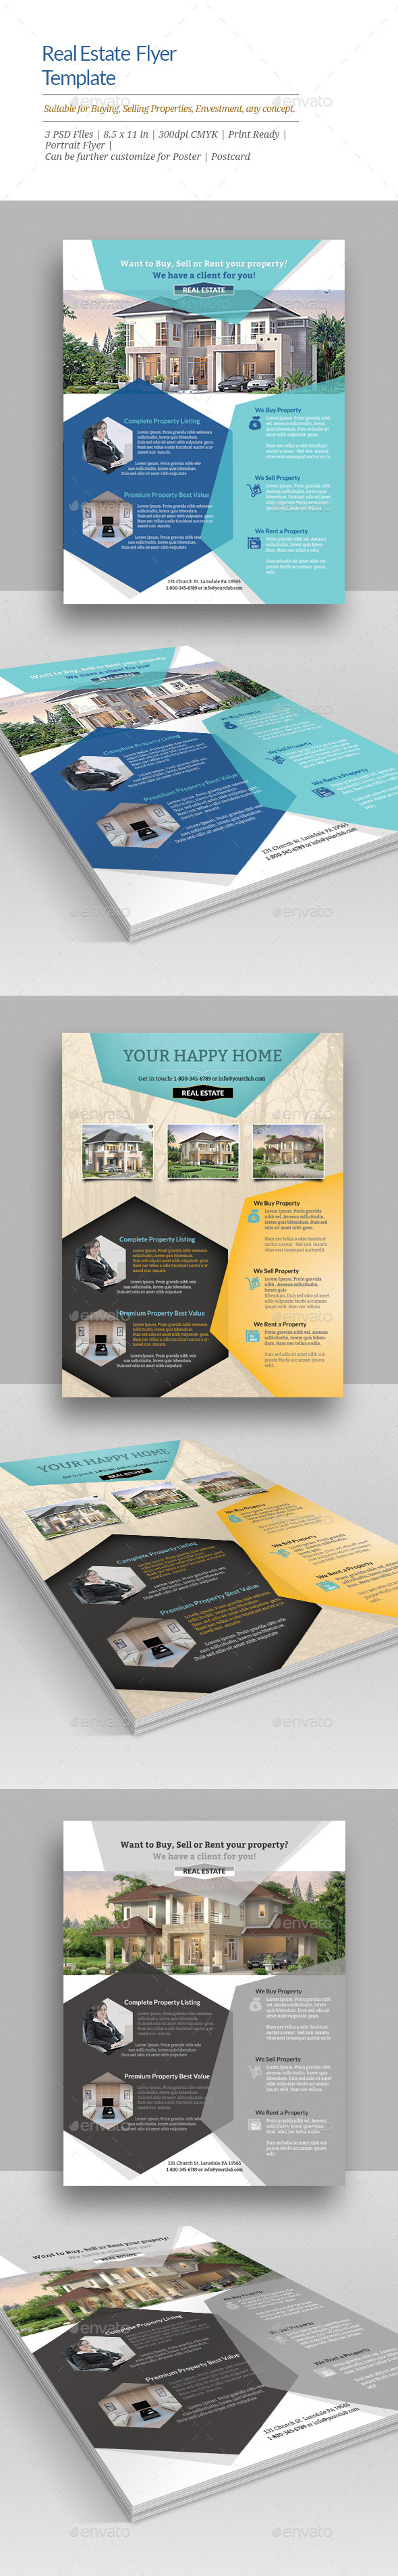 GraphicRiver Real Estate Flyer Templates 11442786